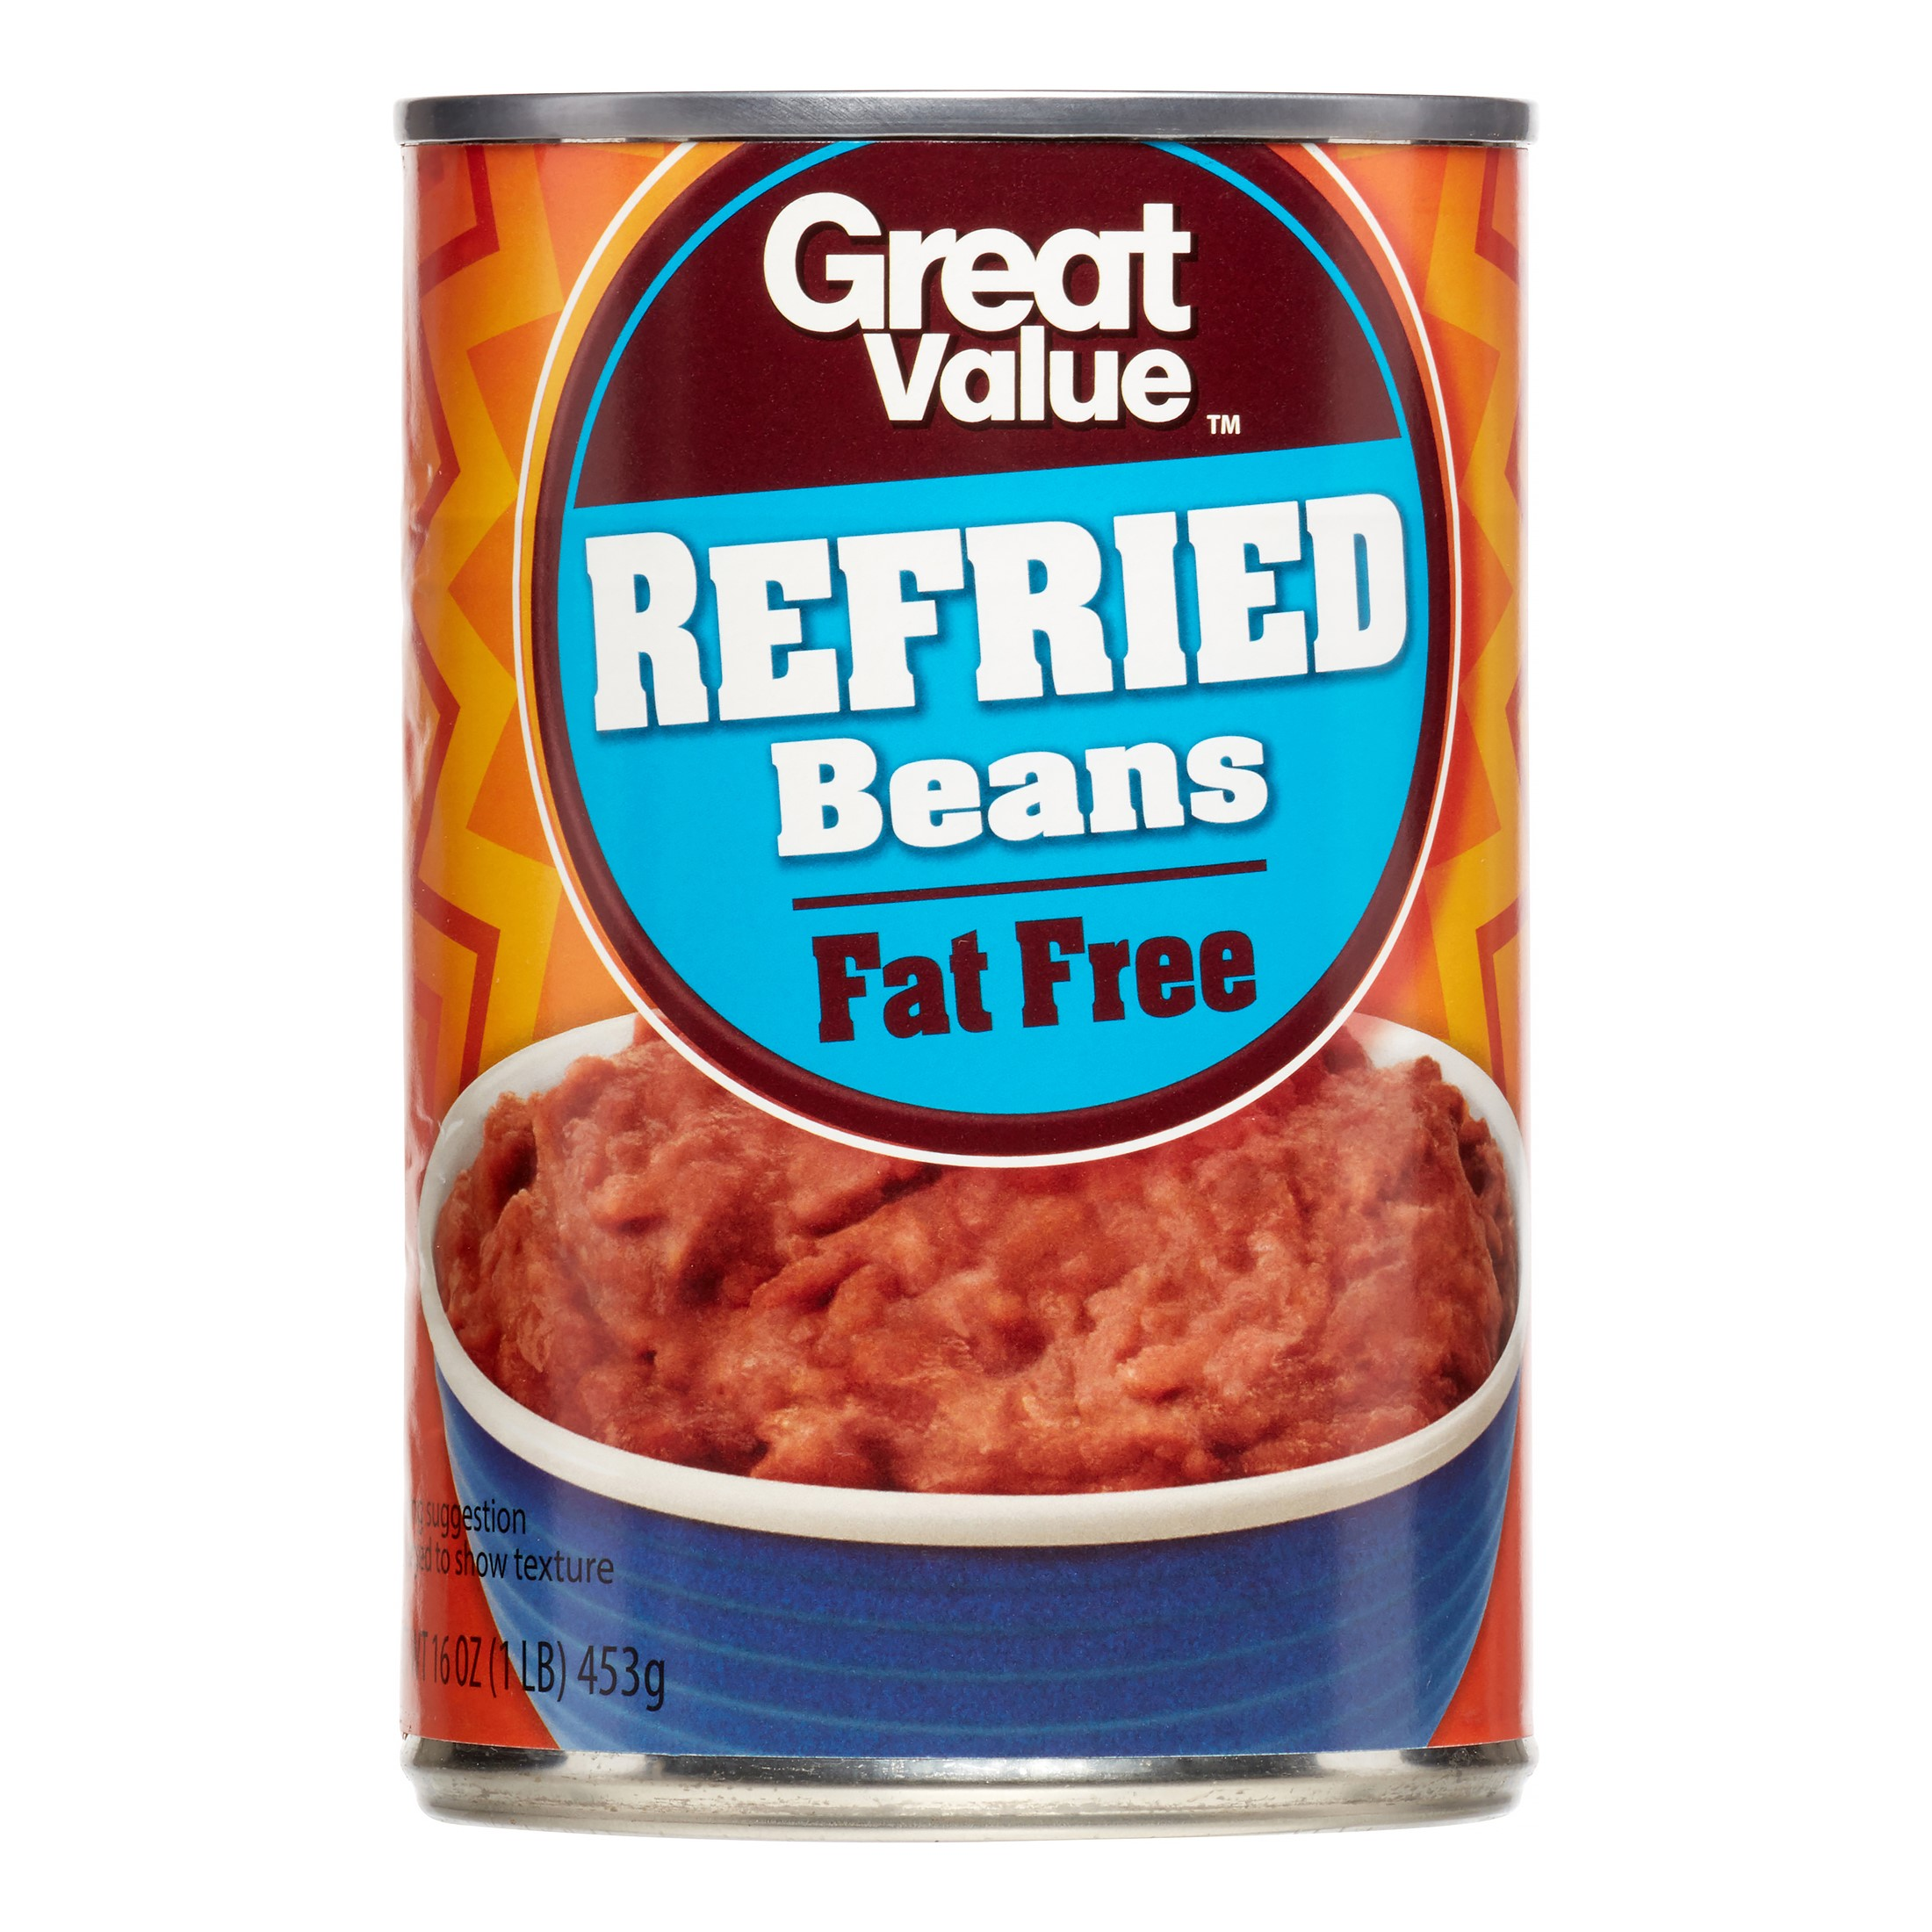 Great Value Refried Beans, Fat Free, 16 Oz